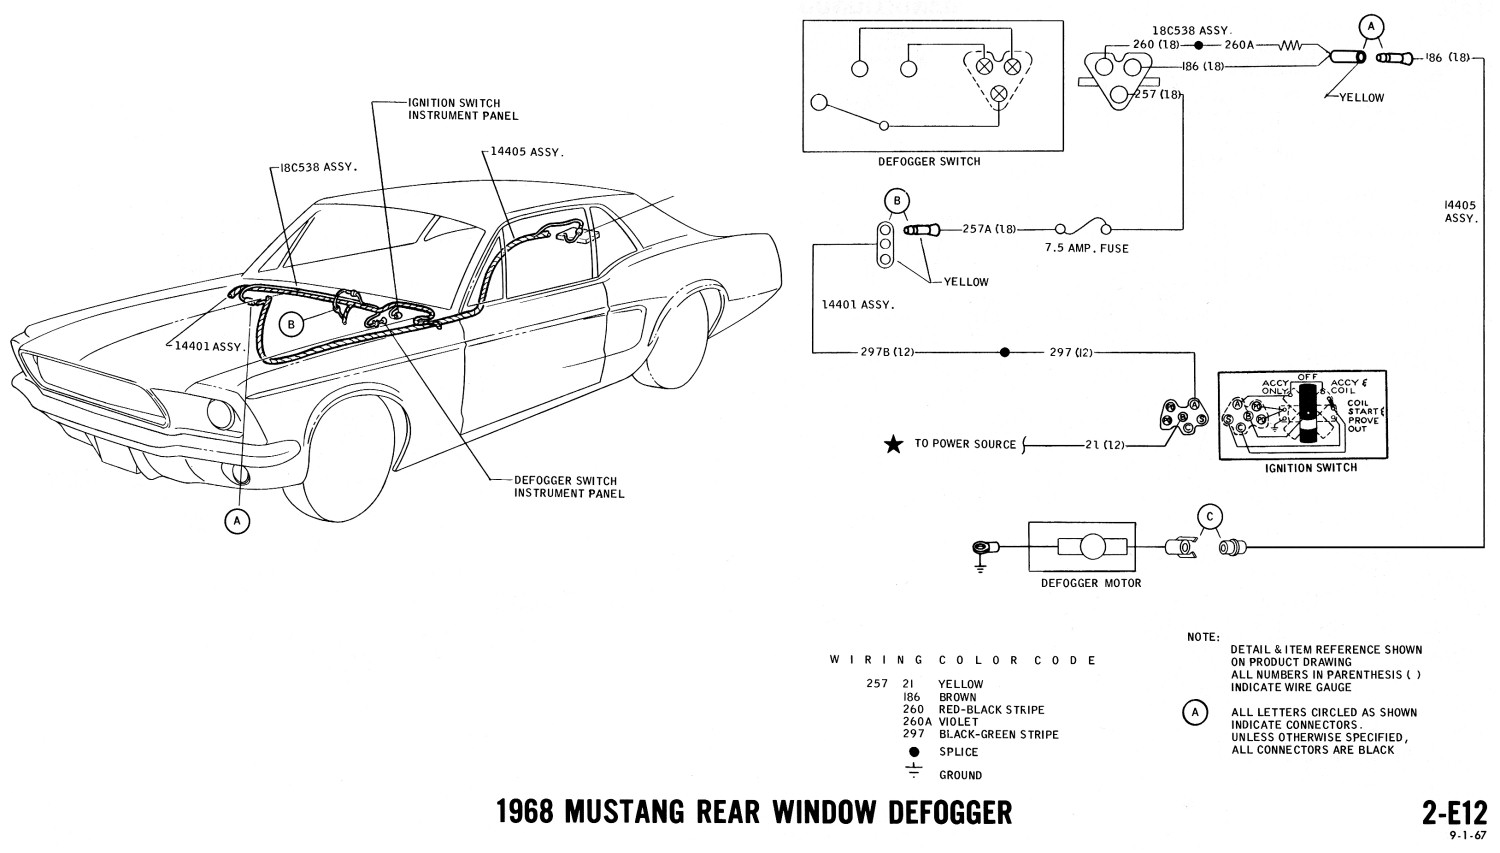 1969 Cadillac Wiring Diagram Simple Guide About 01 Deville Wire 1968 Mustang Diagrams And Vacuum Schematics